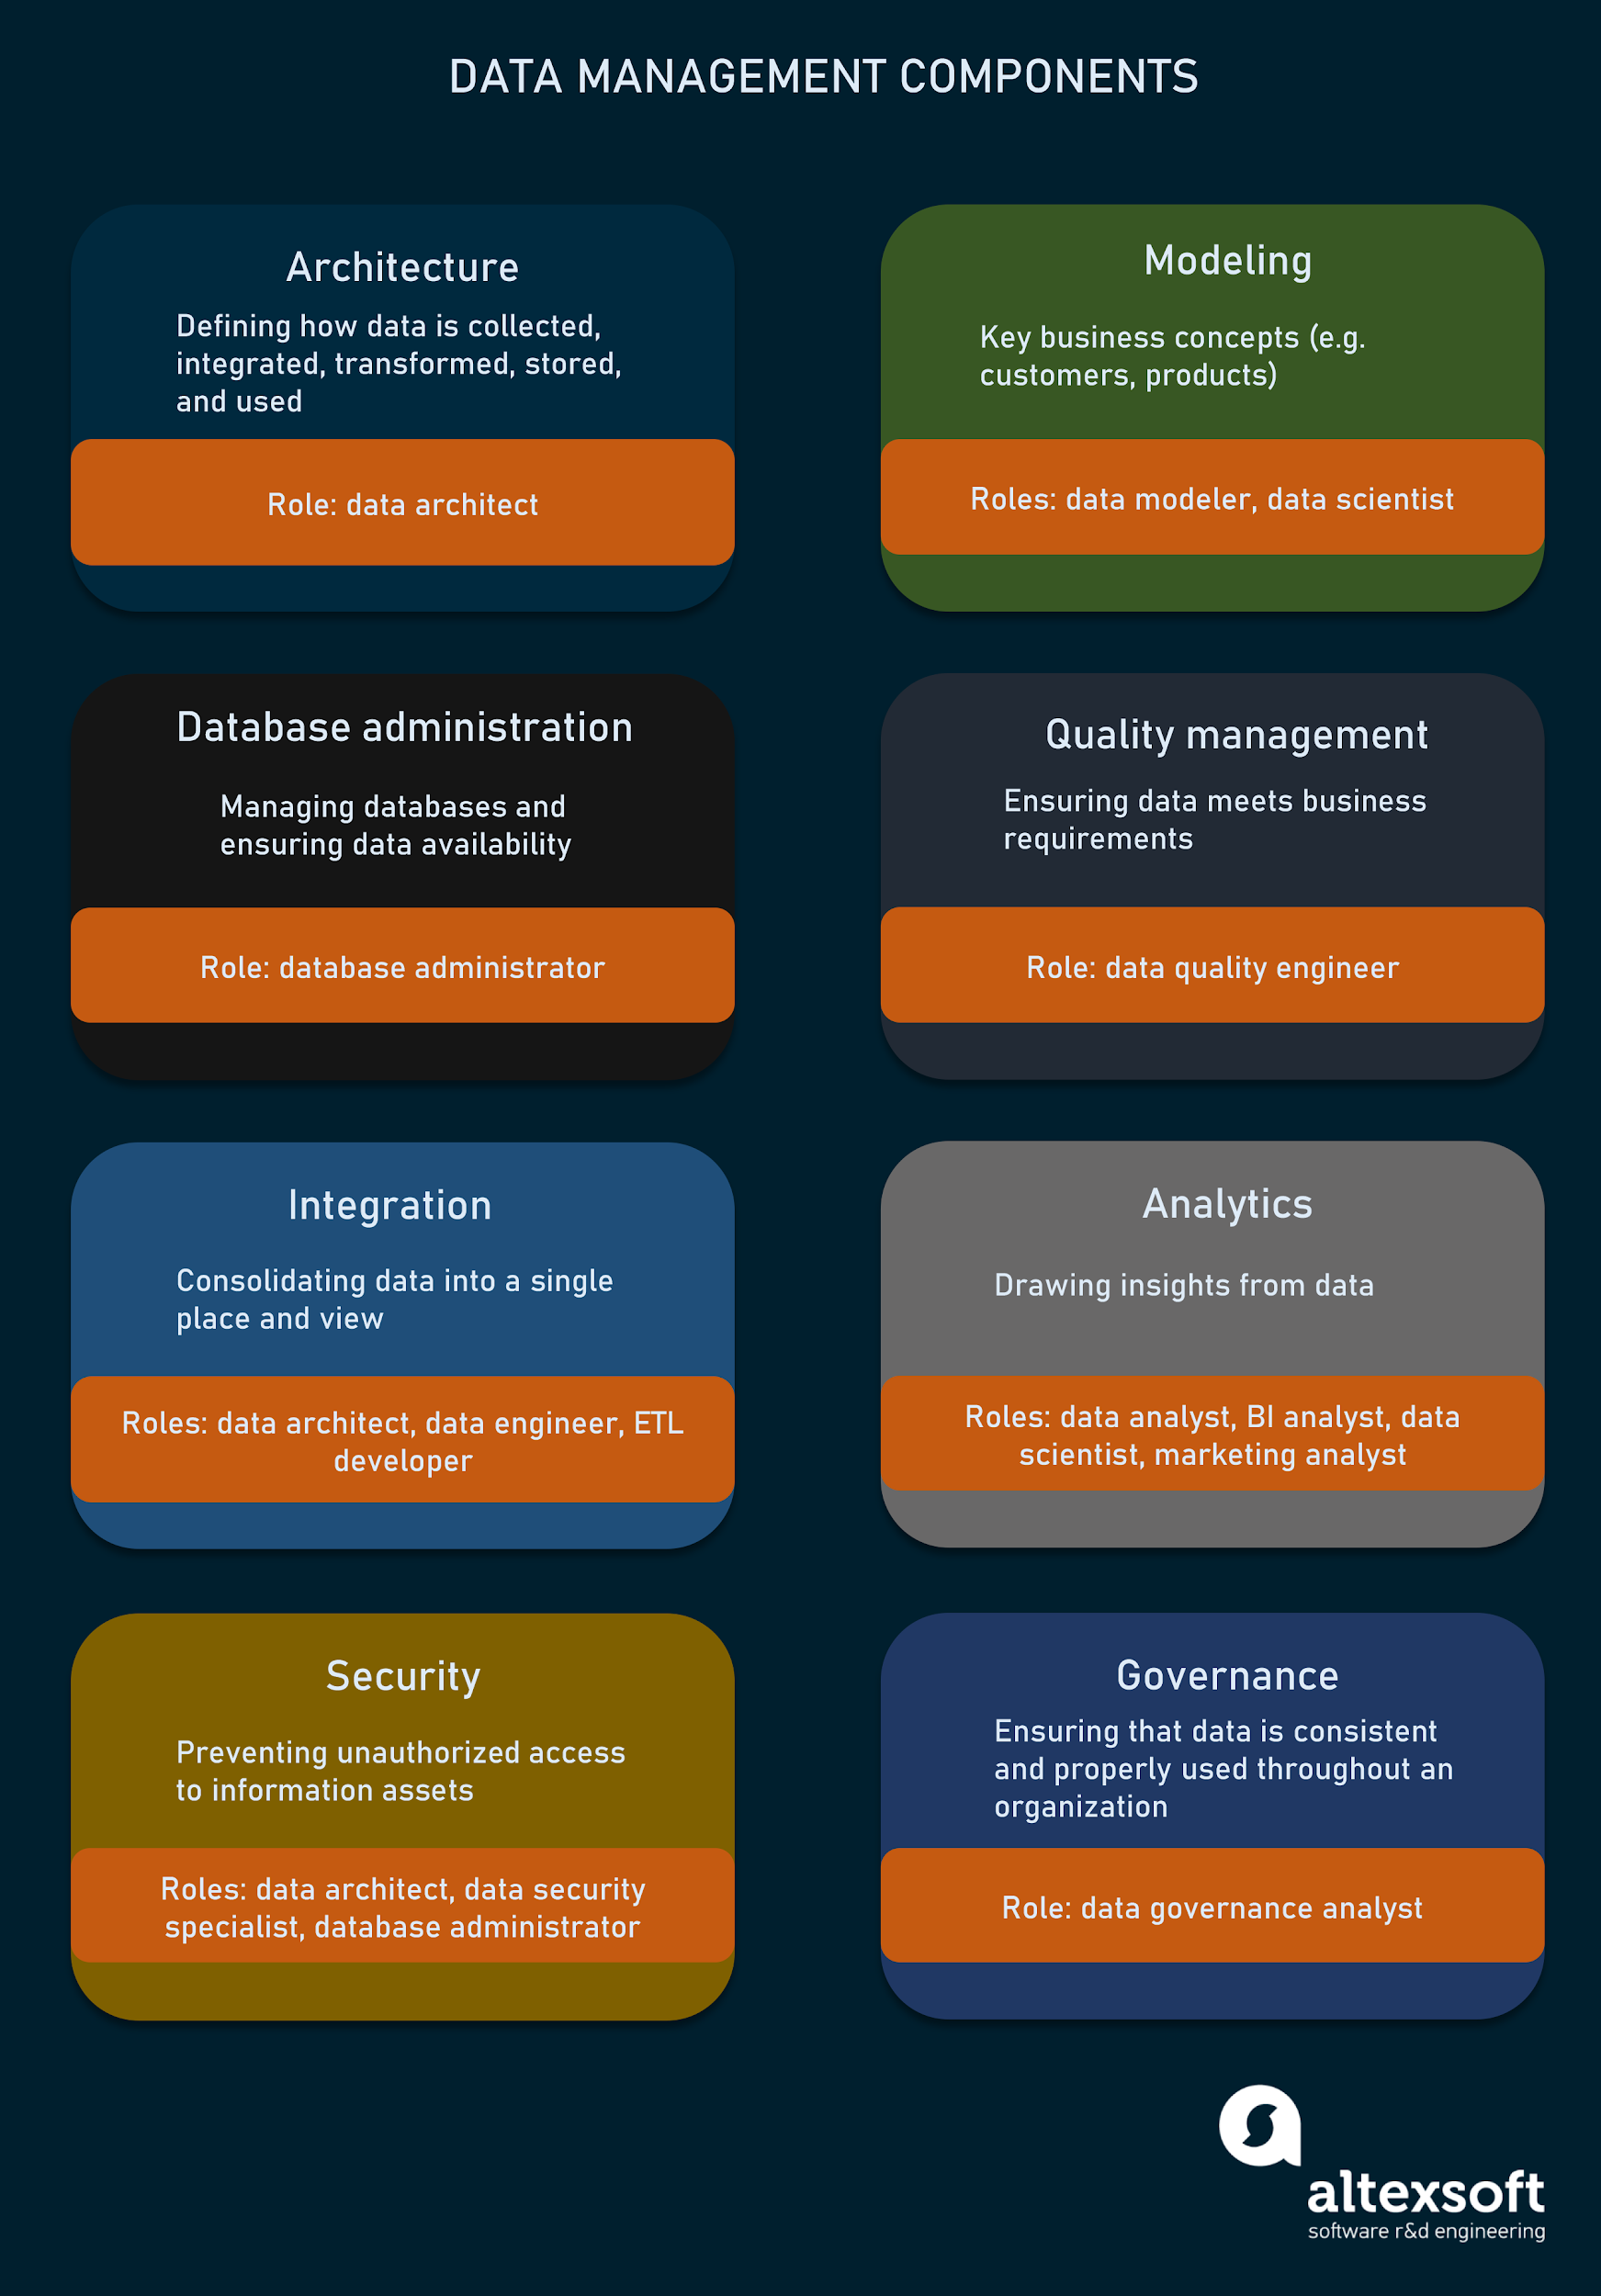 Key disciplines and roles in data management